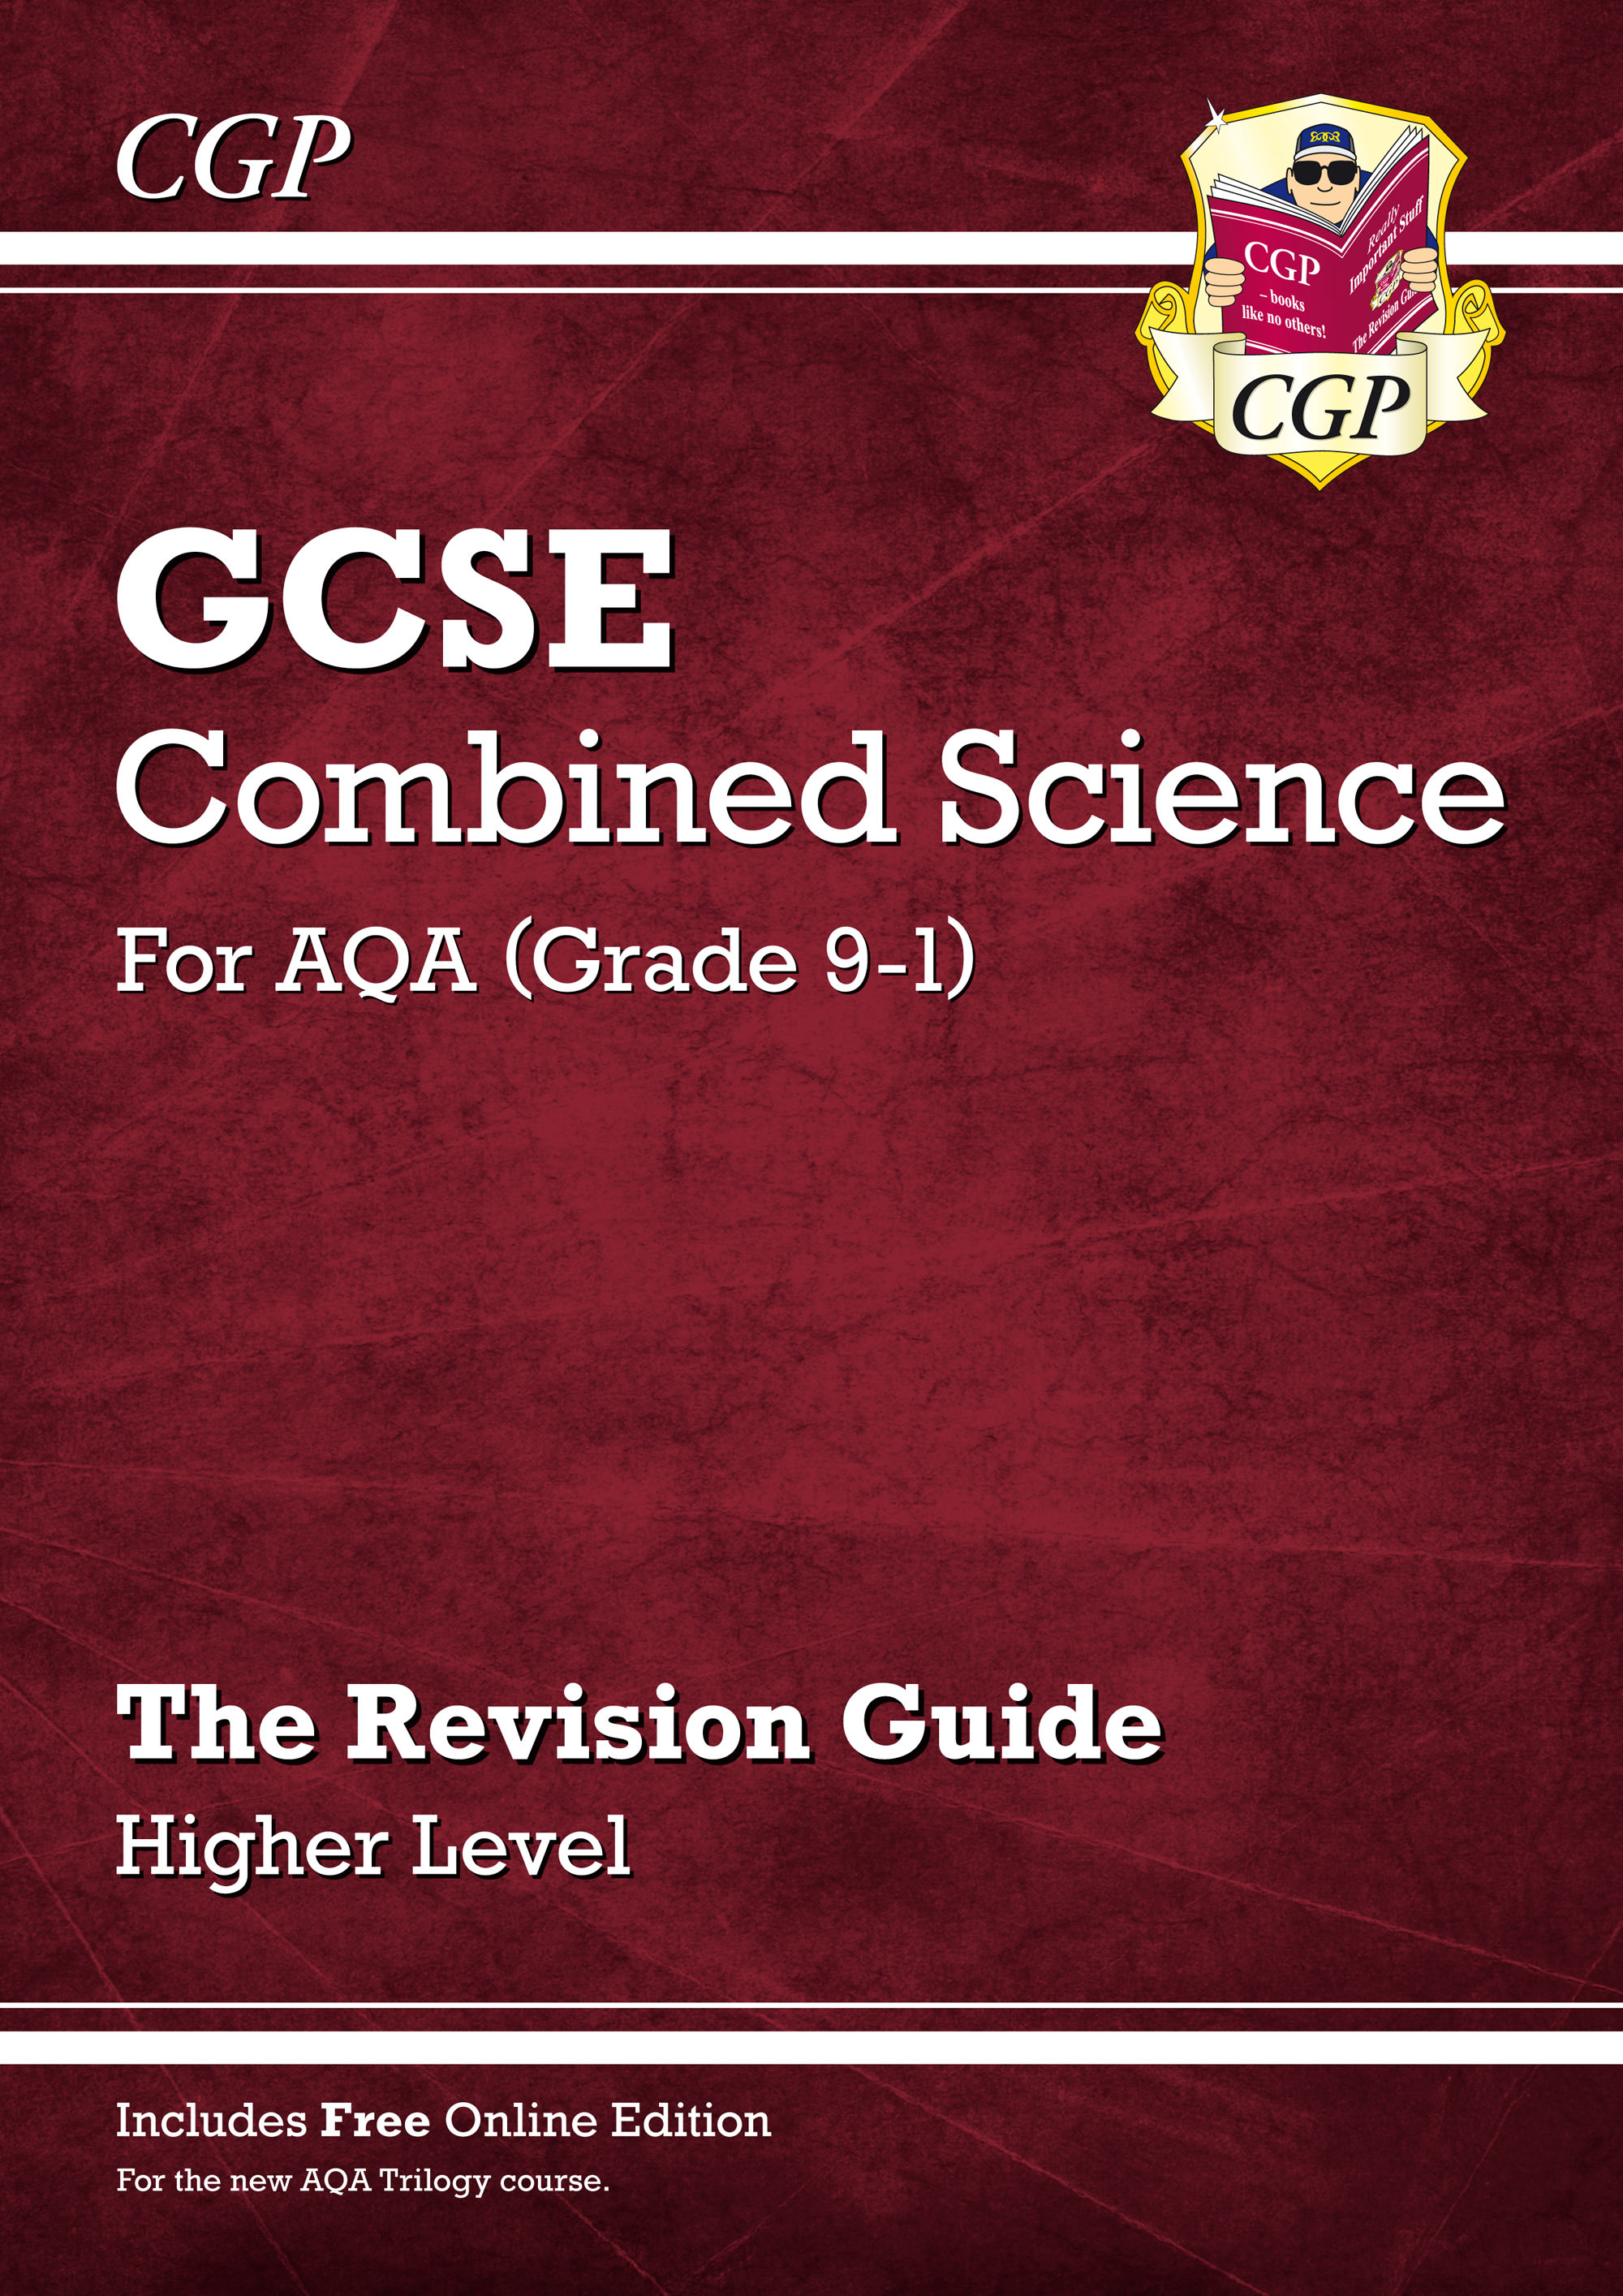 SAHR45 - New Grade 9-1 GCSE Combined Science: AQA Revision Guide with Online Edition - Higher